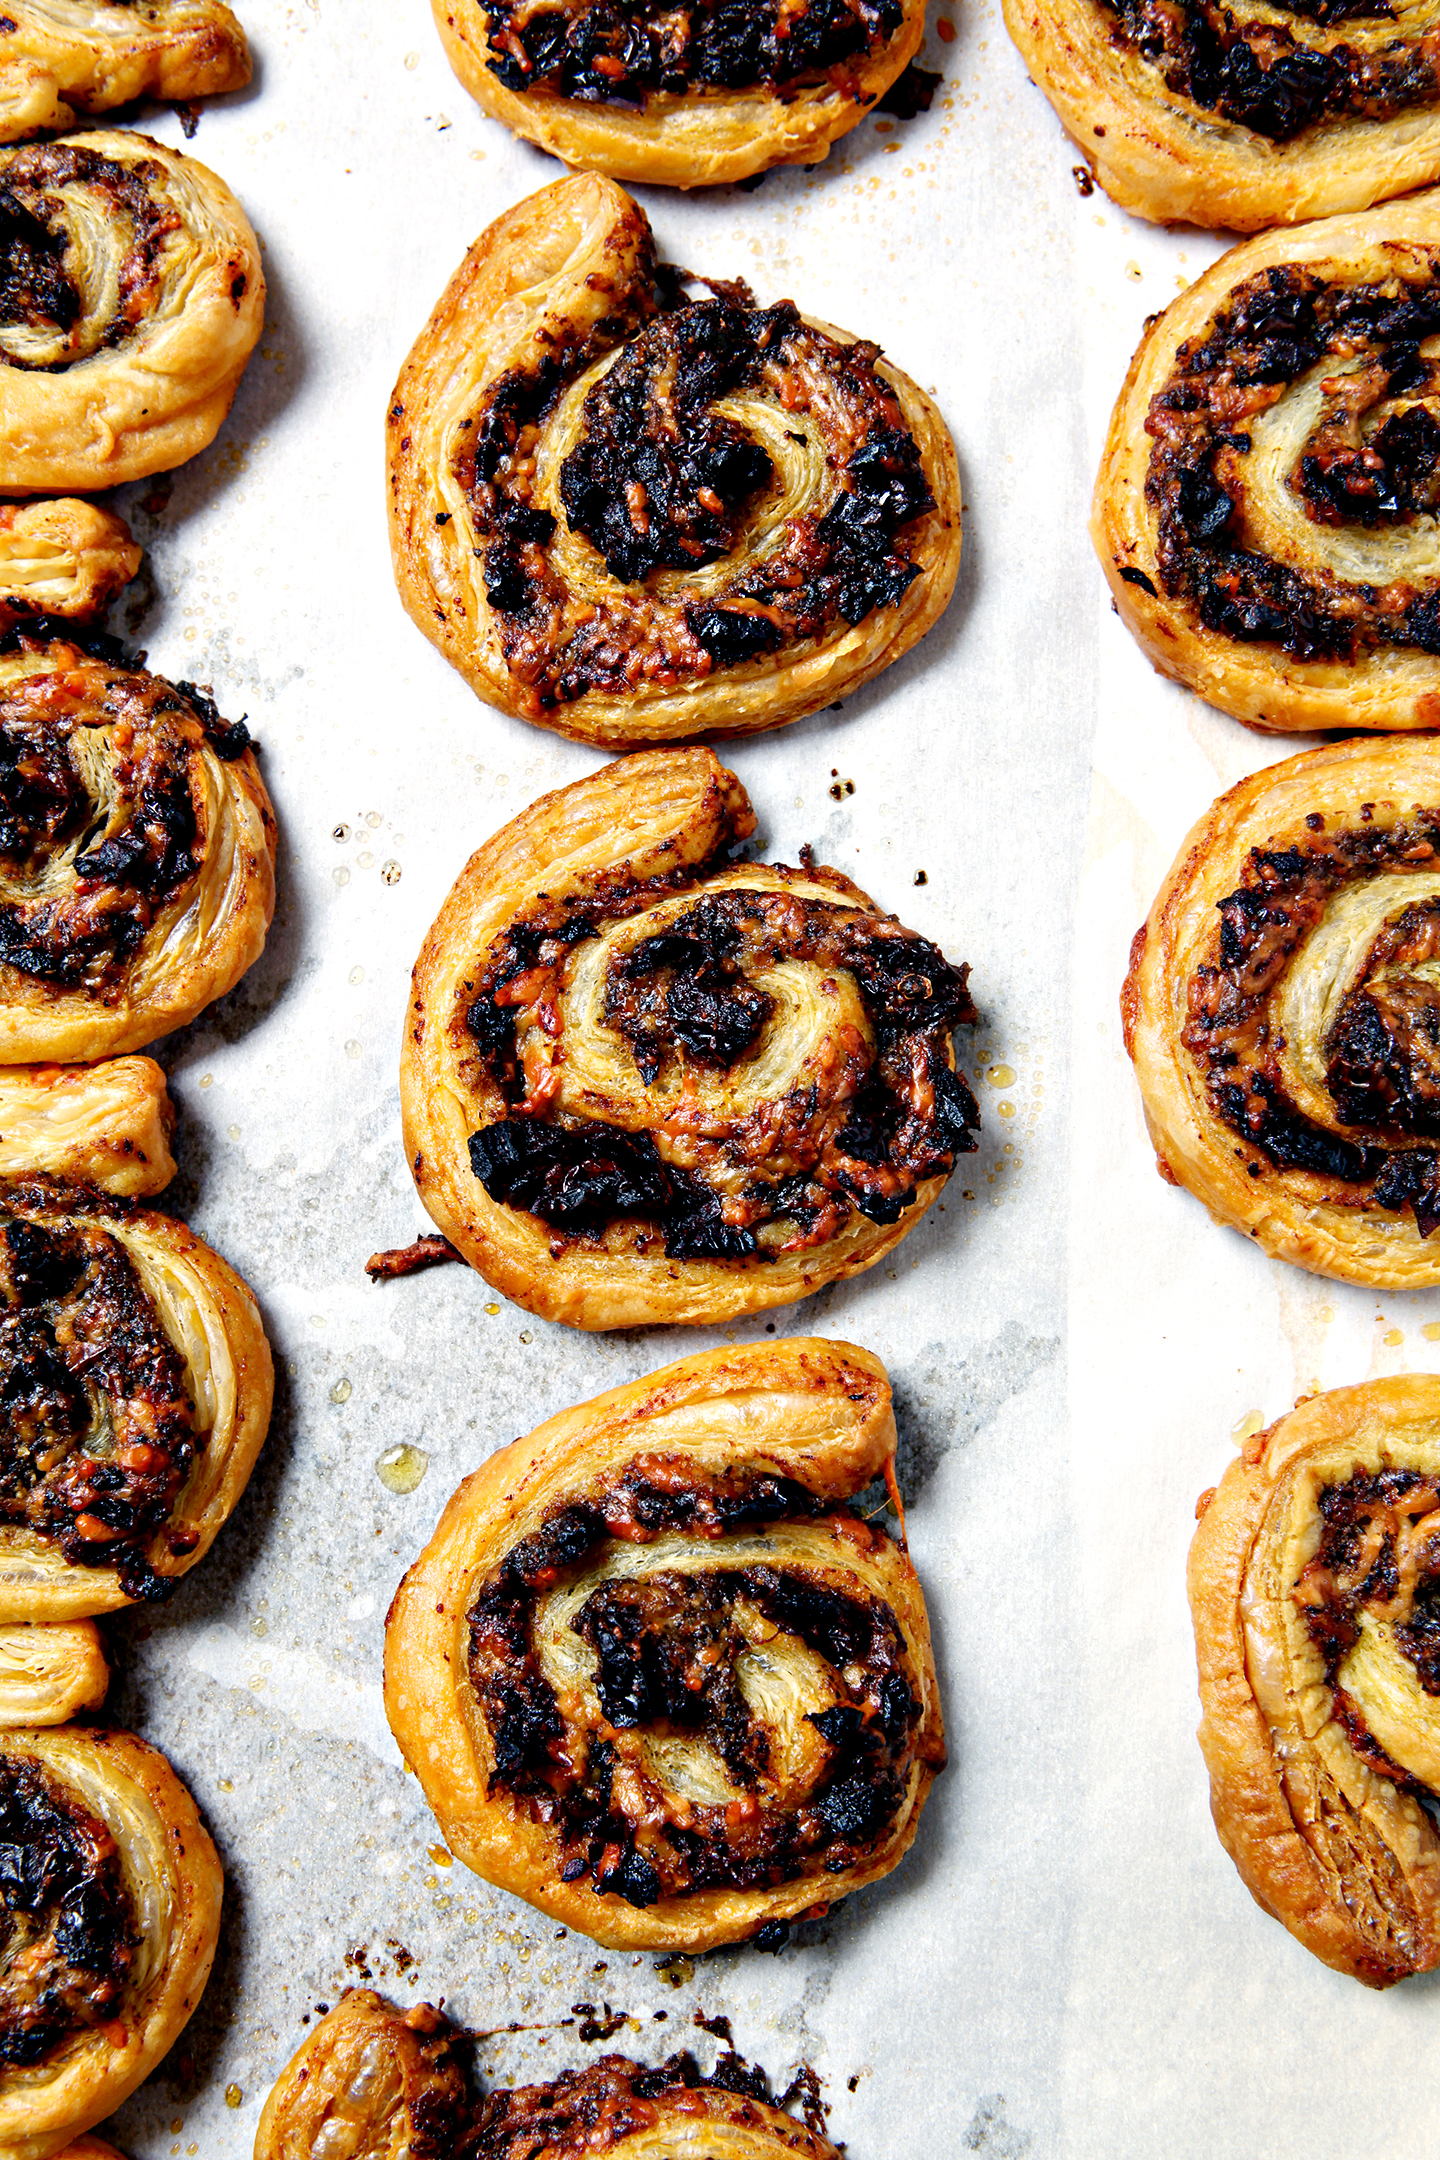 Pesto and Sun-Dried Tomato Pinwheels | Looking for a party app that feeds a crowd and is delicious? These Pesto and Tomato Pinwheels, stuffed with pesto (homemade or store-bought!), sun-dried tomatoes and parmesan cheese, are the perfect starter! @speckledpalate for @mycookingspot